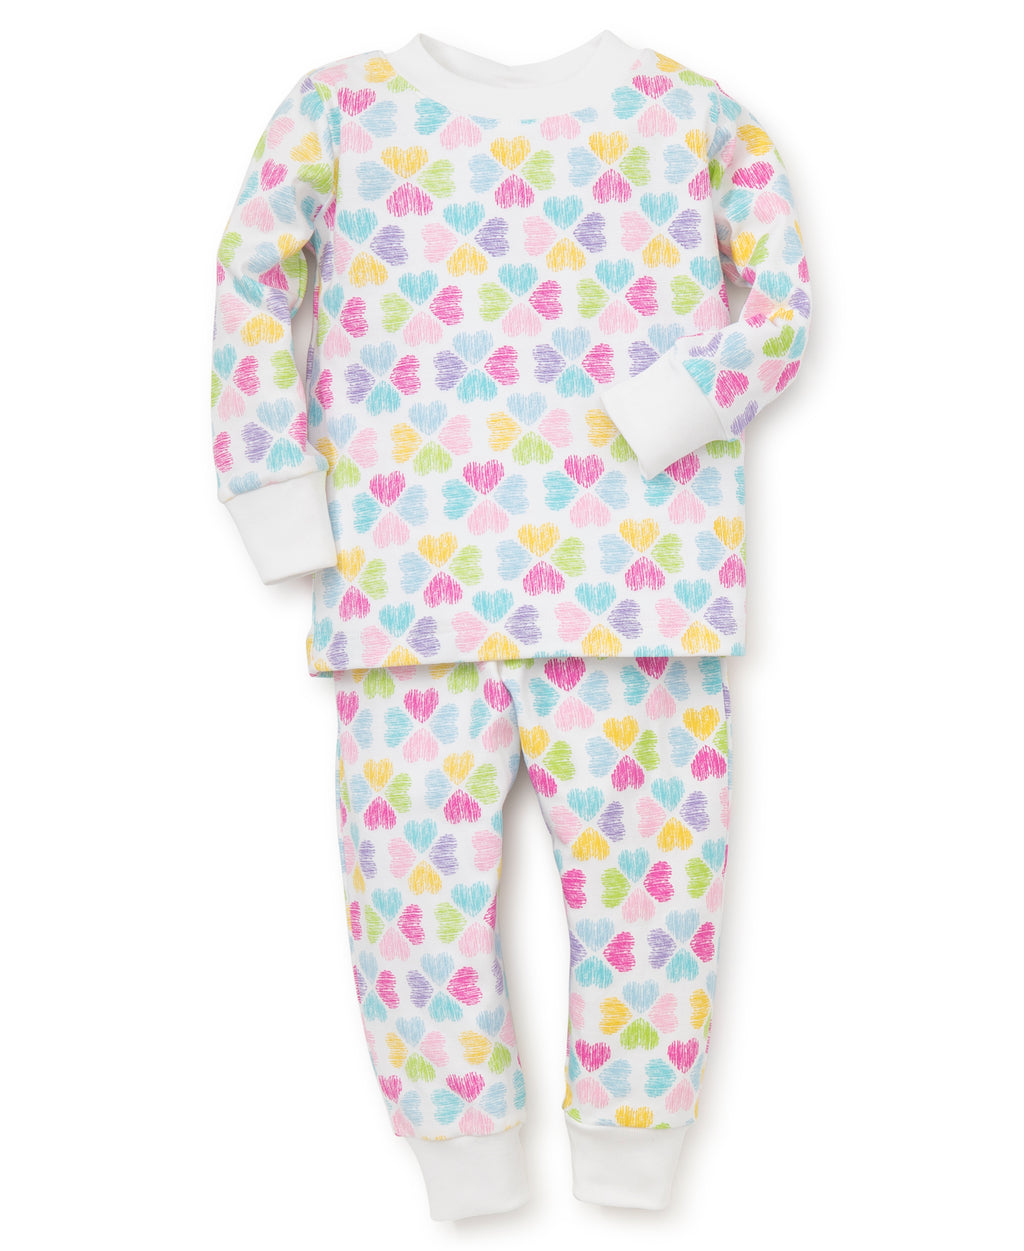 Hearts Toddler Pajama Set